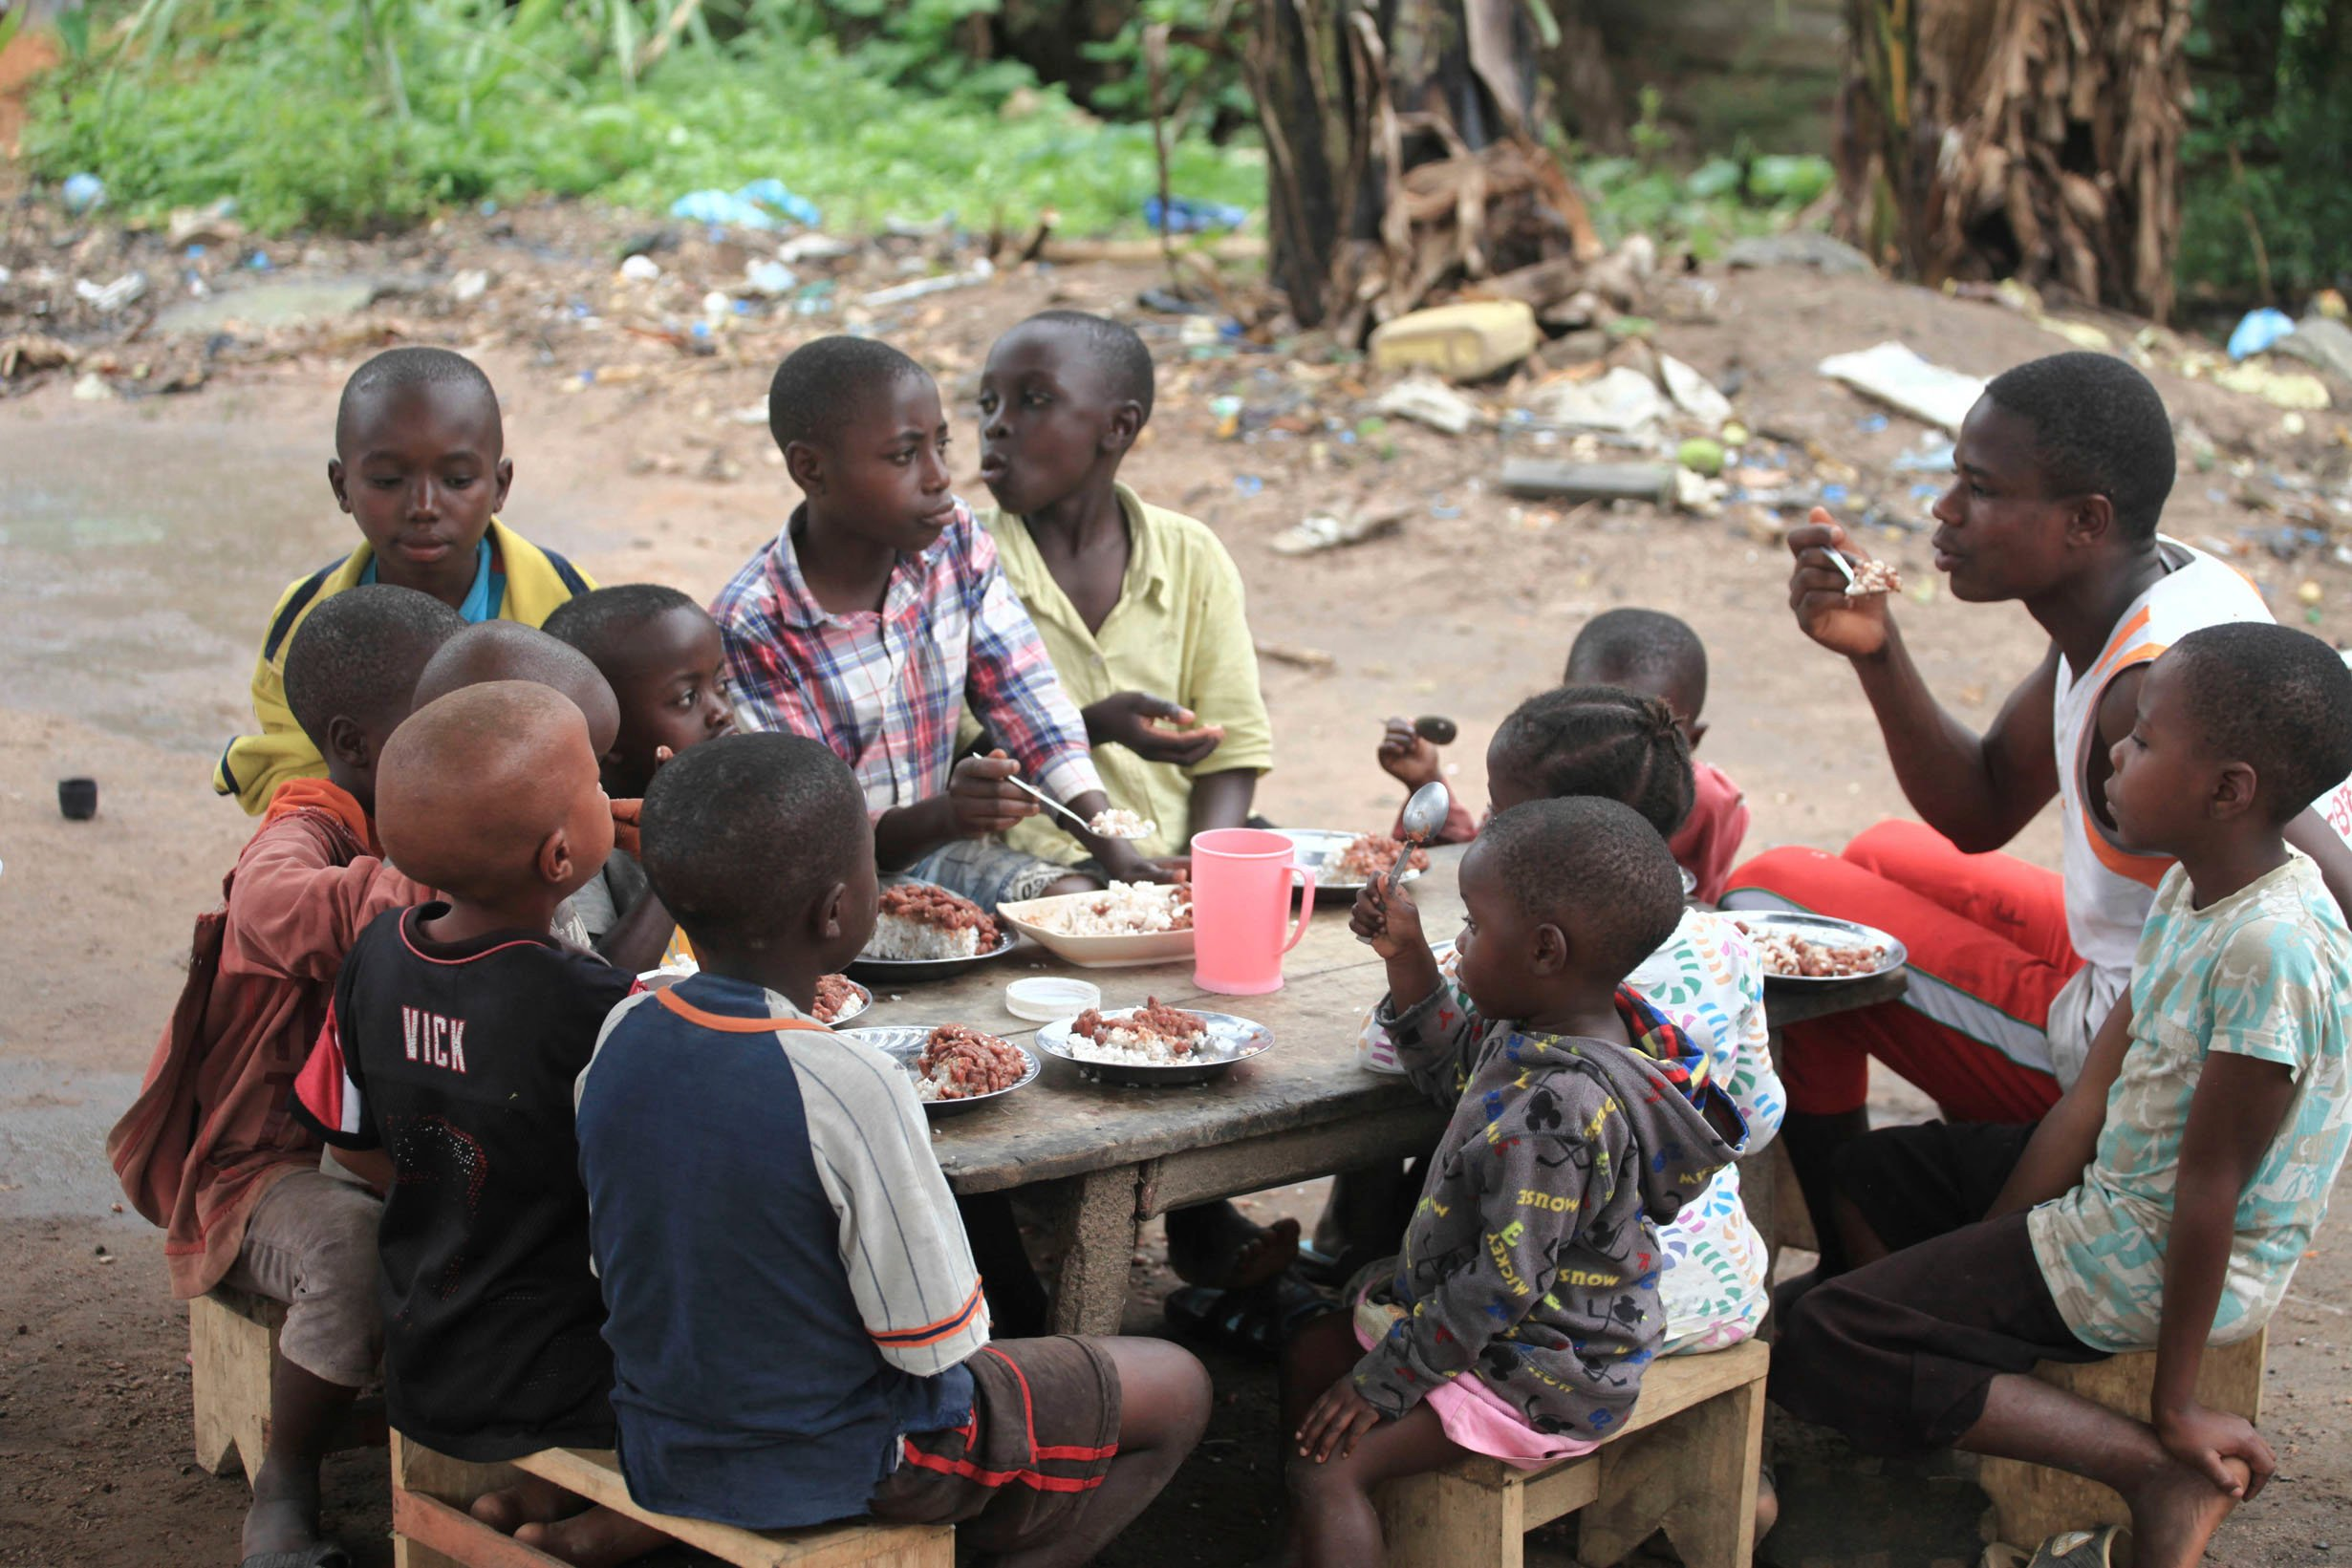 At Least 27 Civilians Including Children Massacred In Northeast Dr Congo Daily Sabah